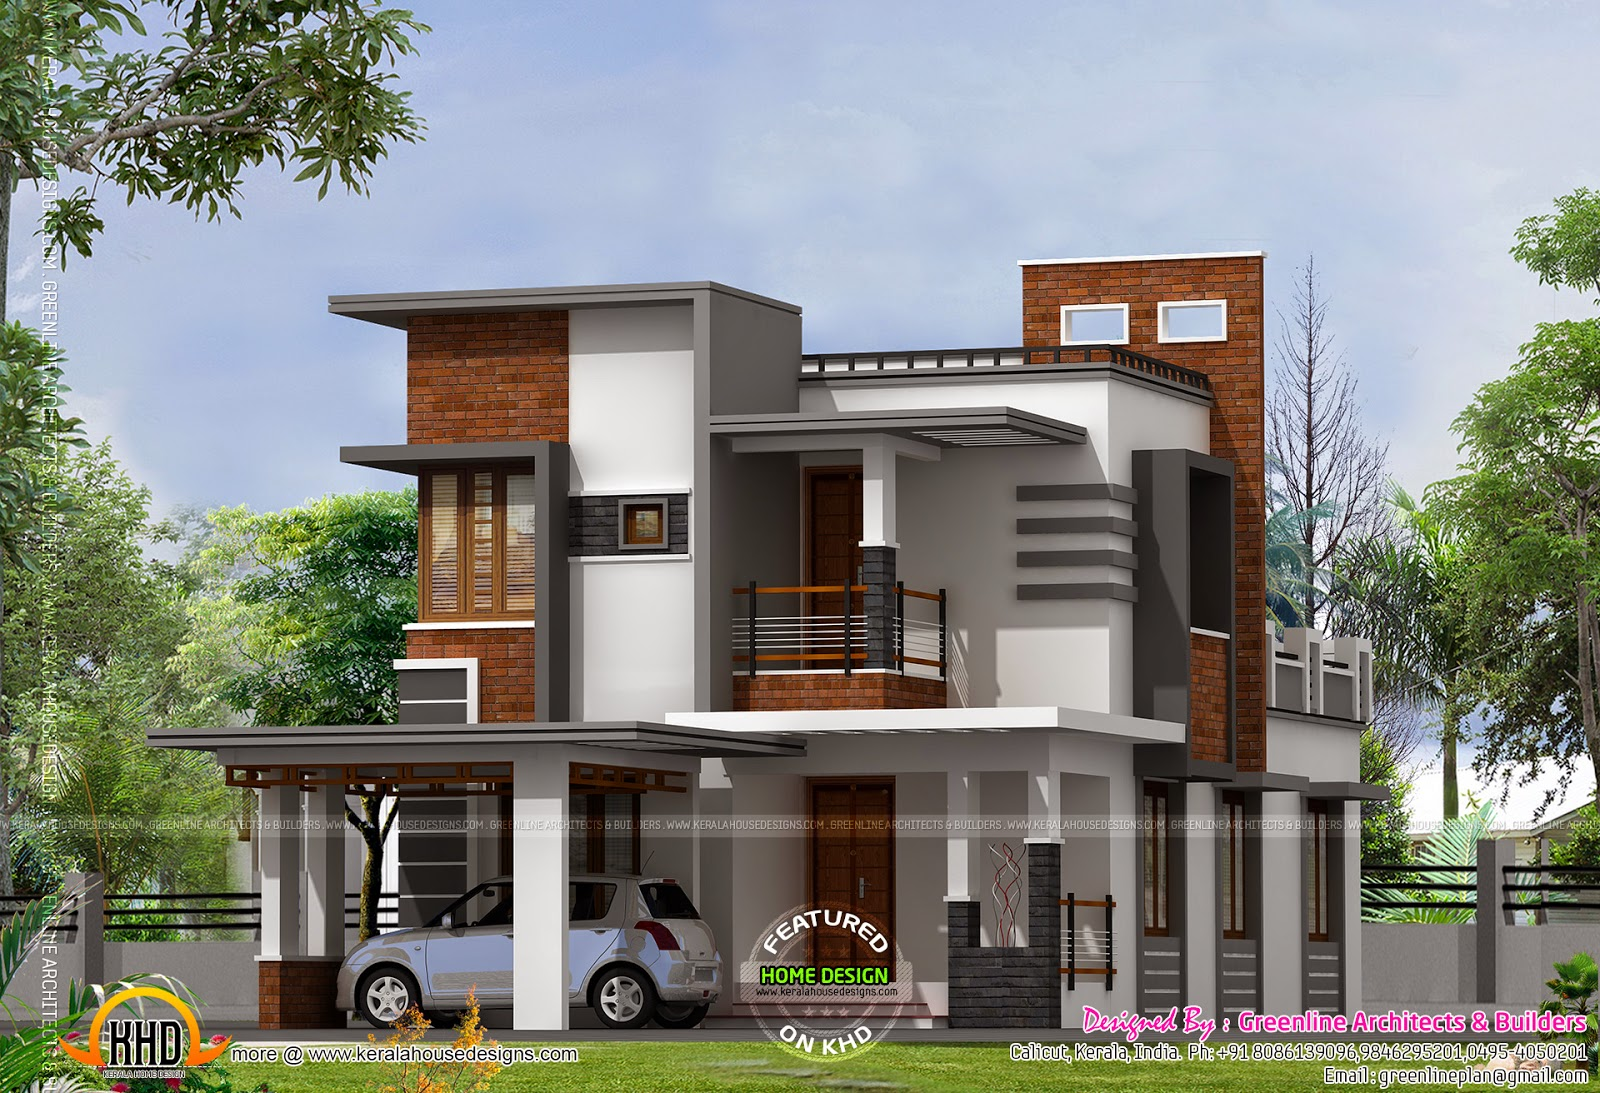 Low cost contemporary house kerala home design and floor for Modern home plans